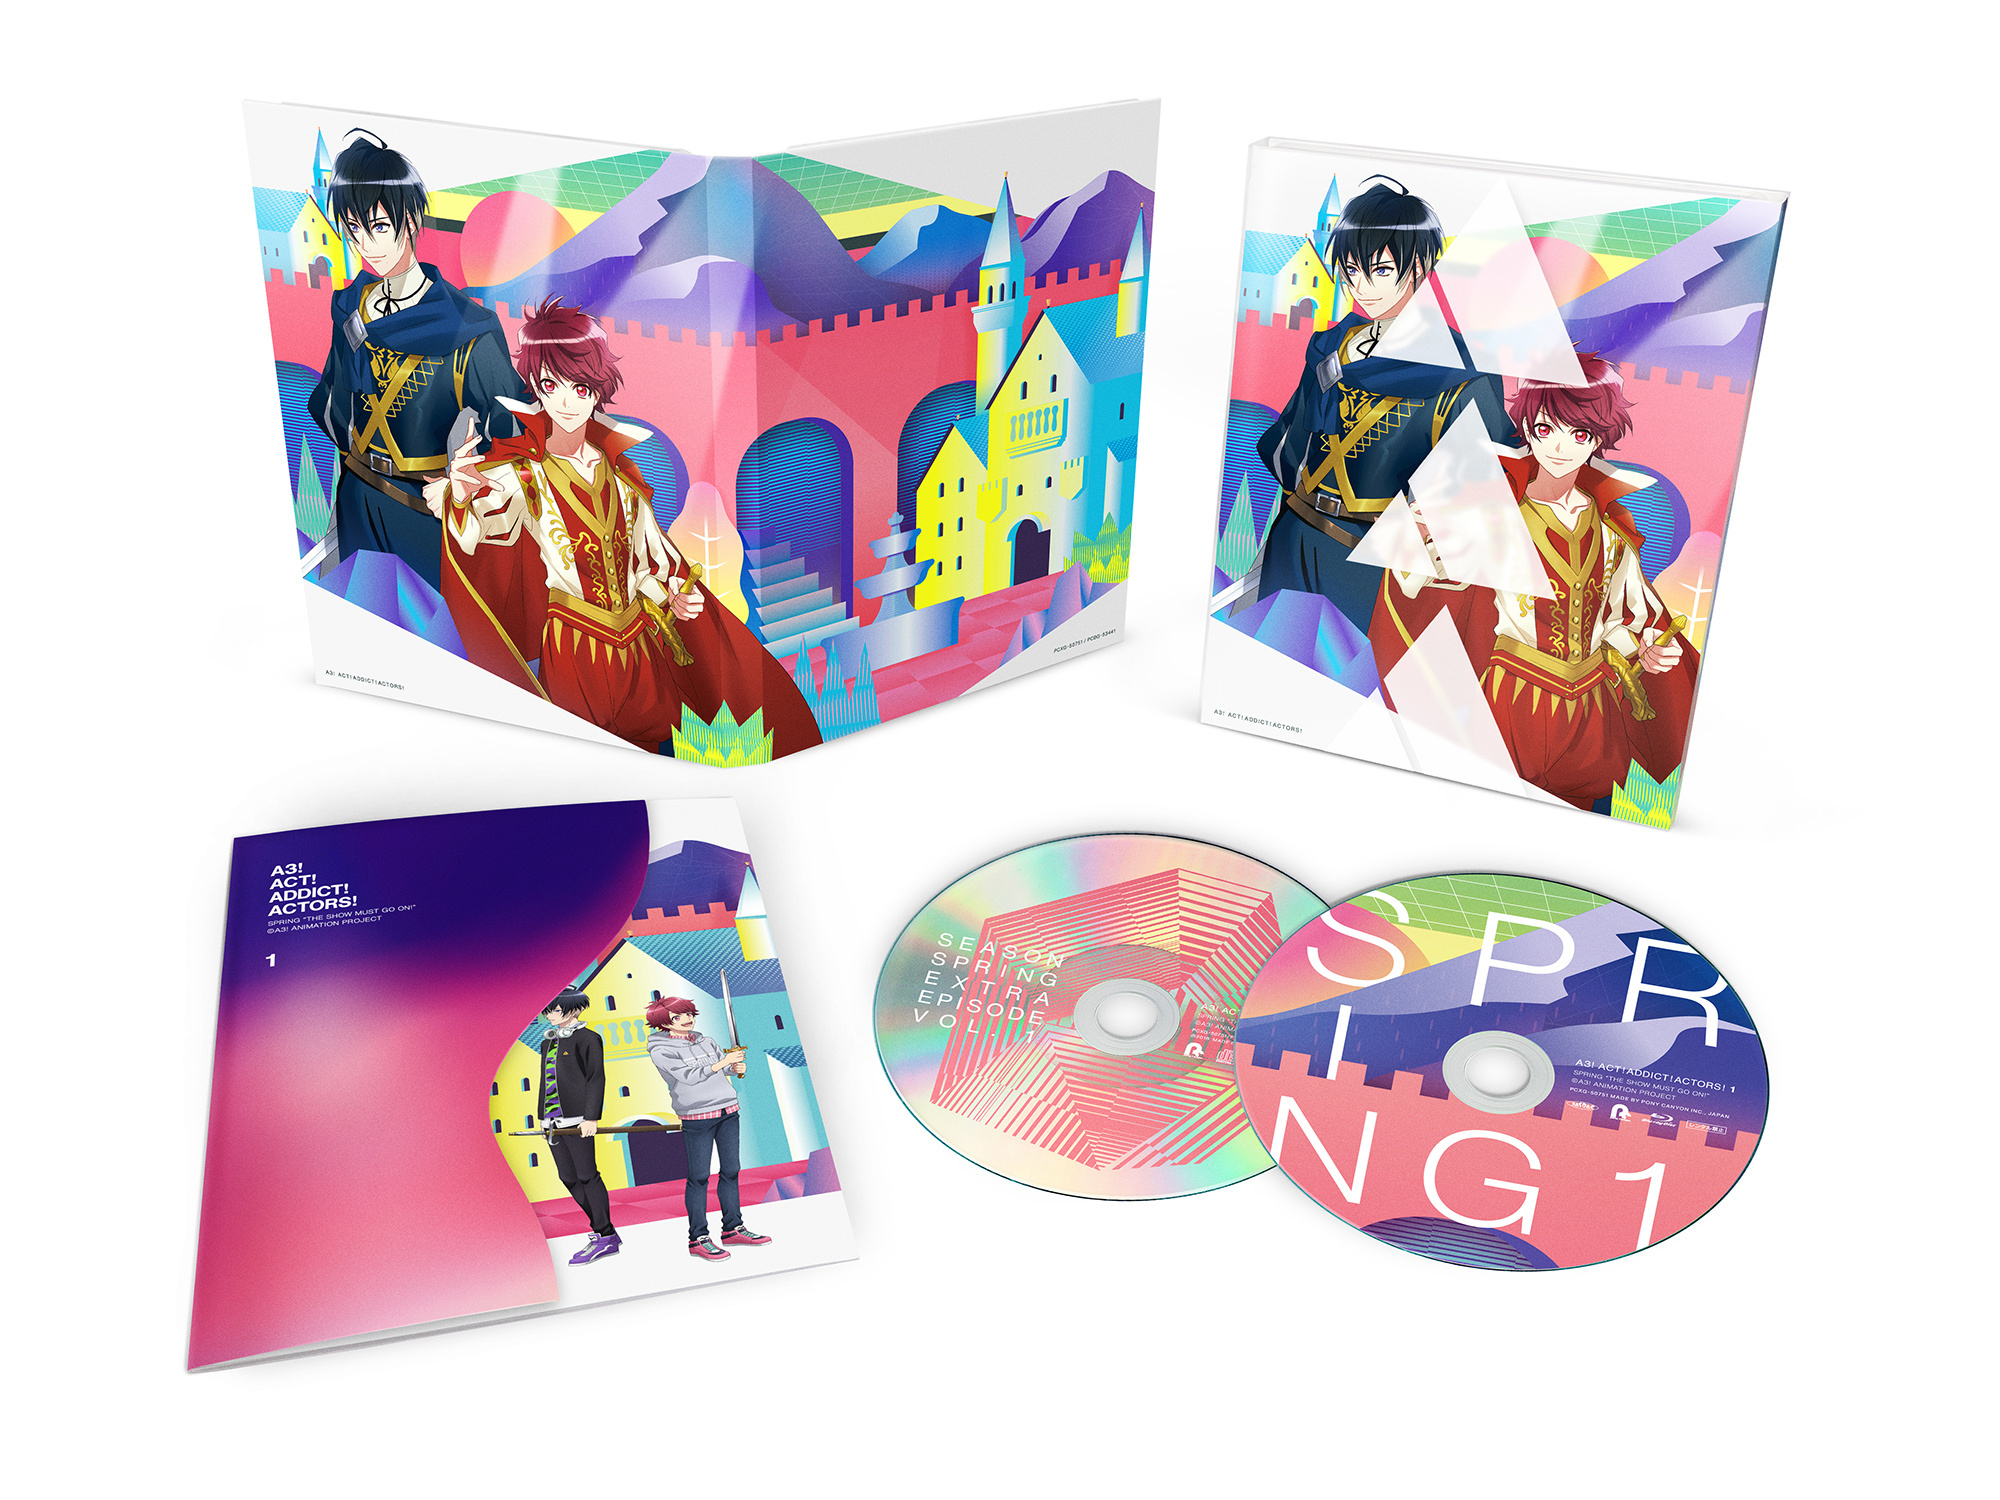 TVアニメ『A3!』Blu-ray&DVD 第1巻 展開  (C)Liber Entertainment Inc. All Rights Reserved.